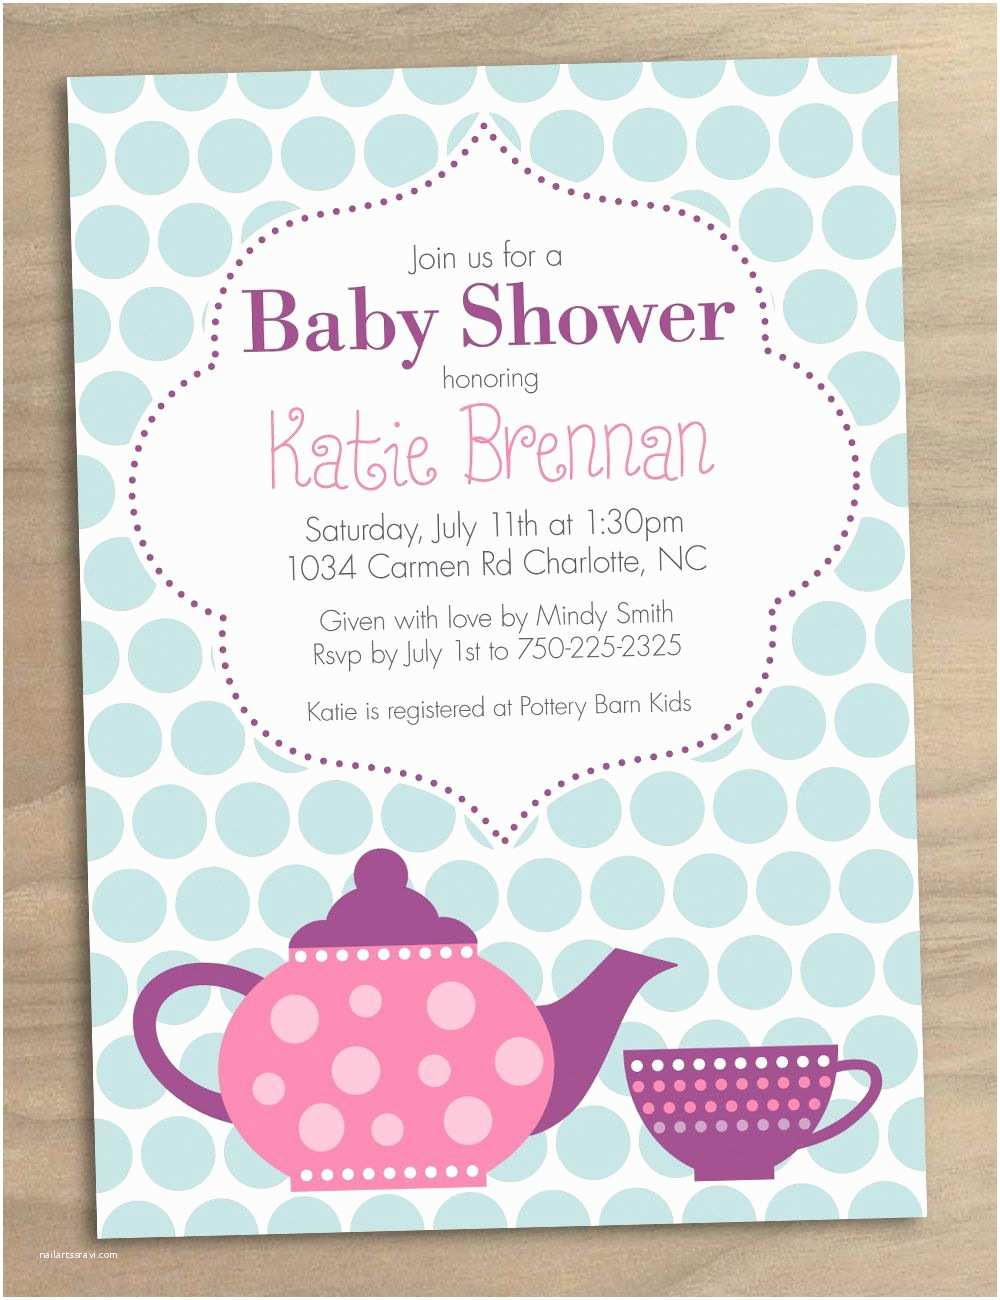 Tea Party Invitations Bridal Shower Tea Party Invitations Bridal Shower Tea